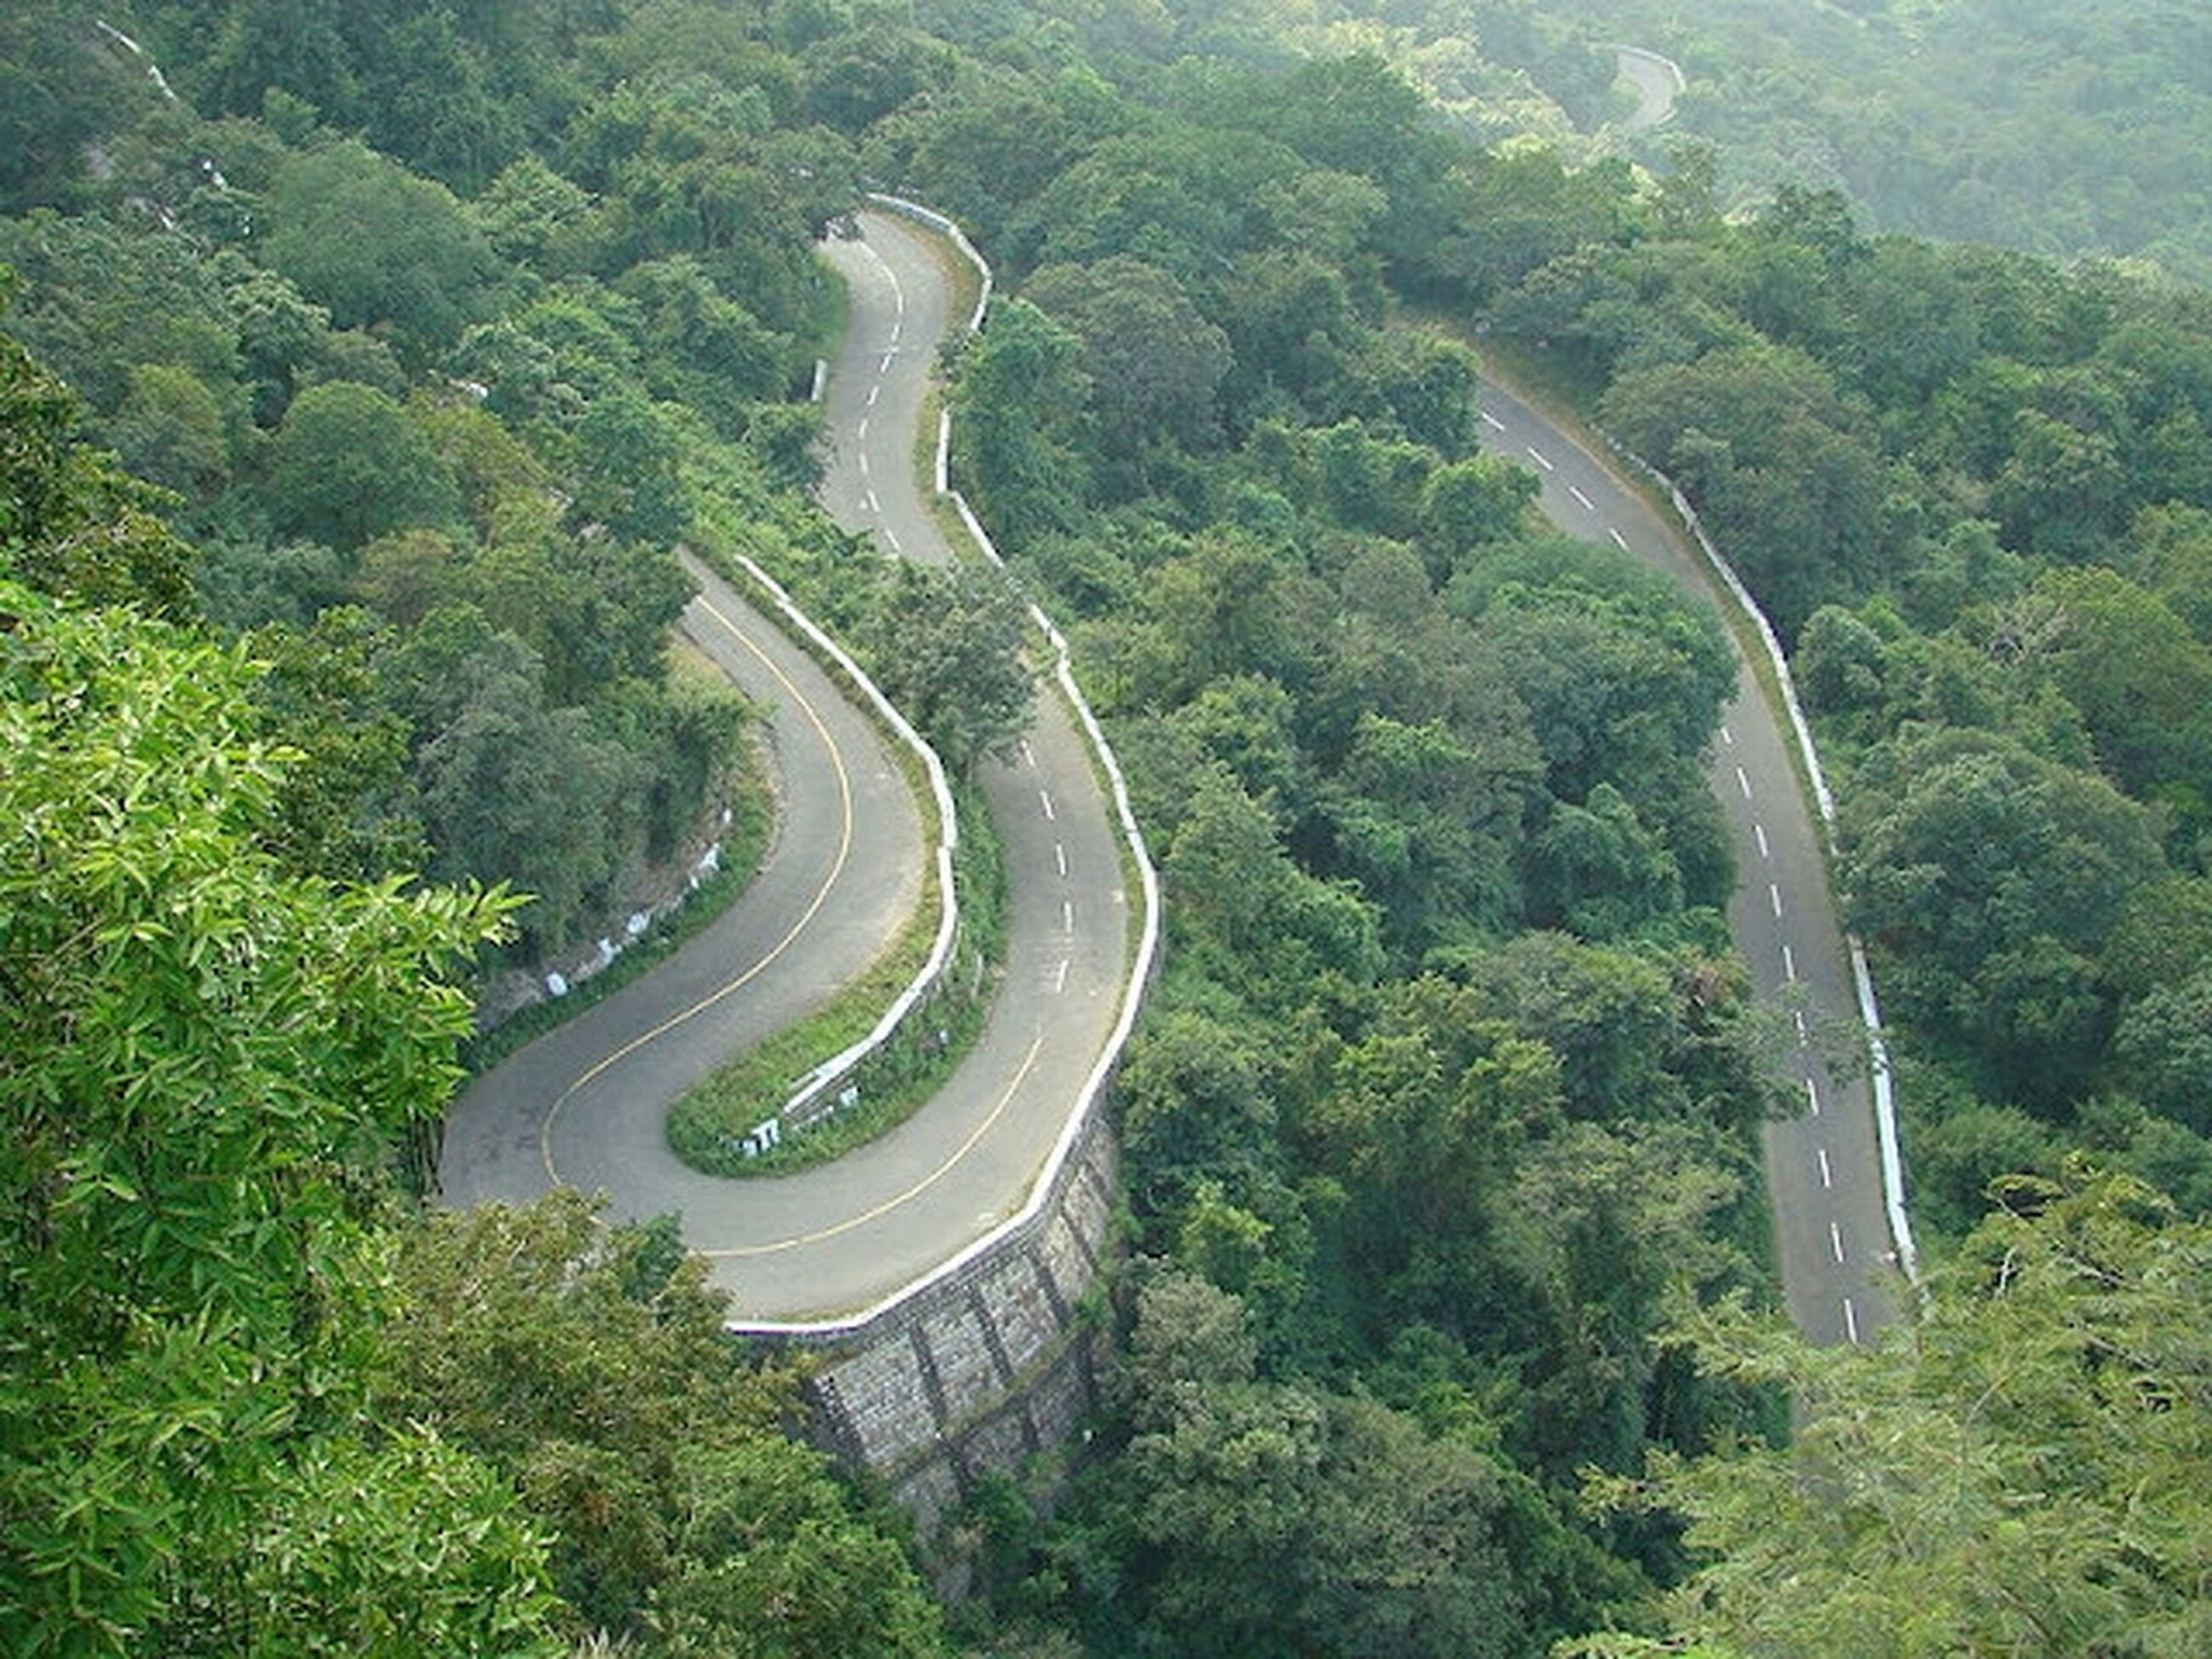 tree, transportation, high angle view, green color, built structure, architecture, growth, road, lush foliage, connection, day, travel, travel destinations, nature, forest, outdoors, curve, no people, bridge - man made structure, tourism